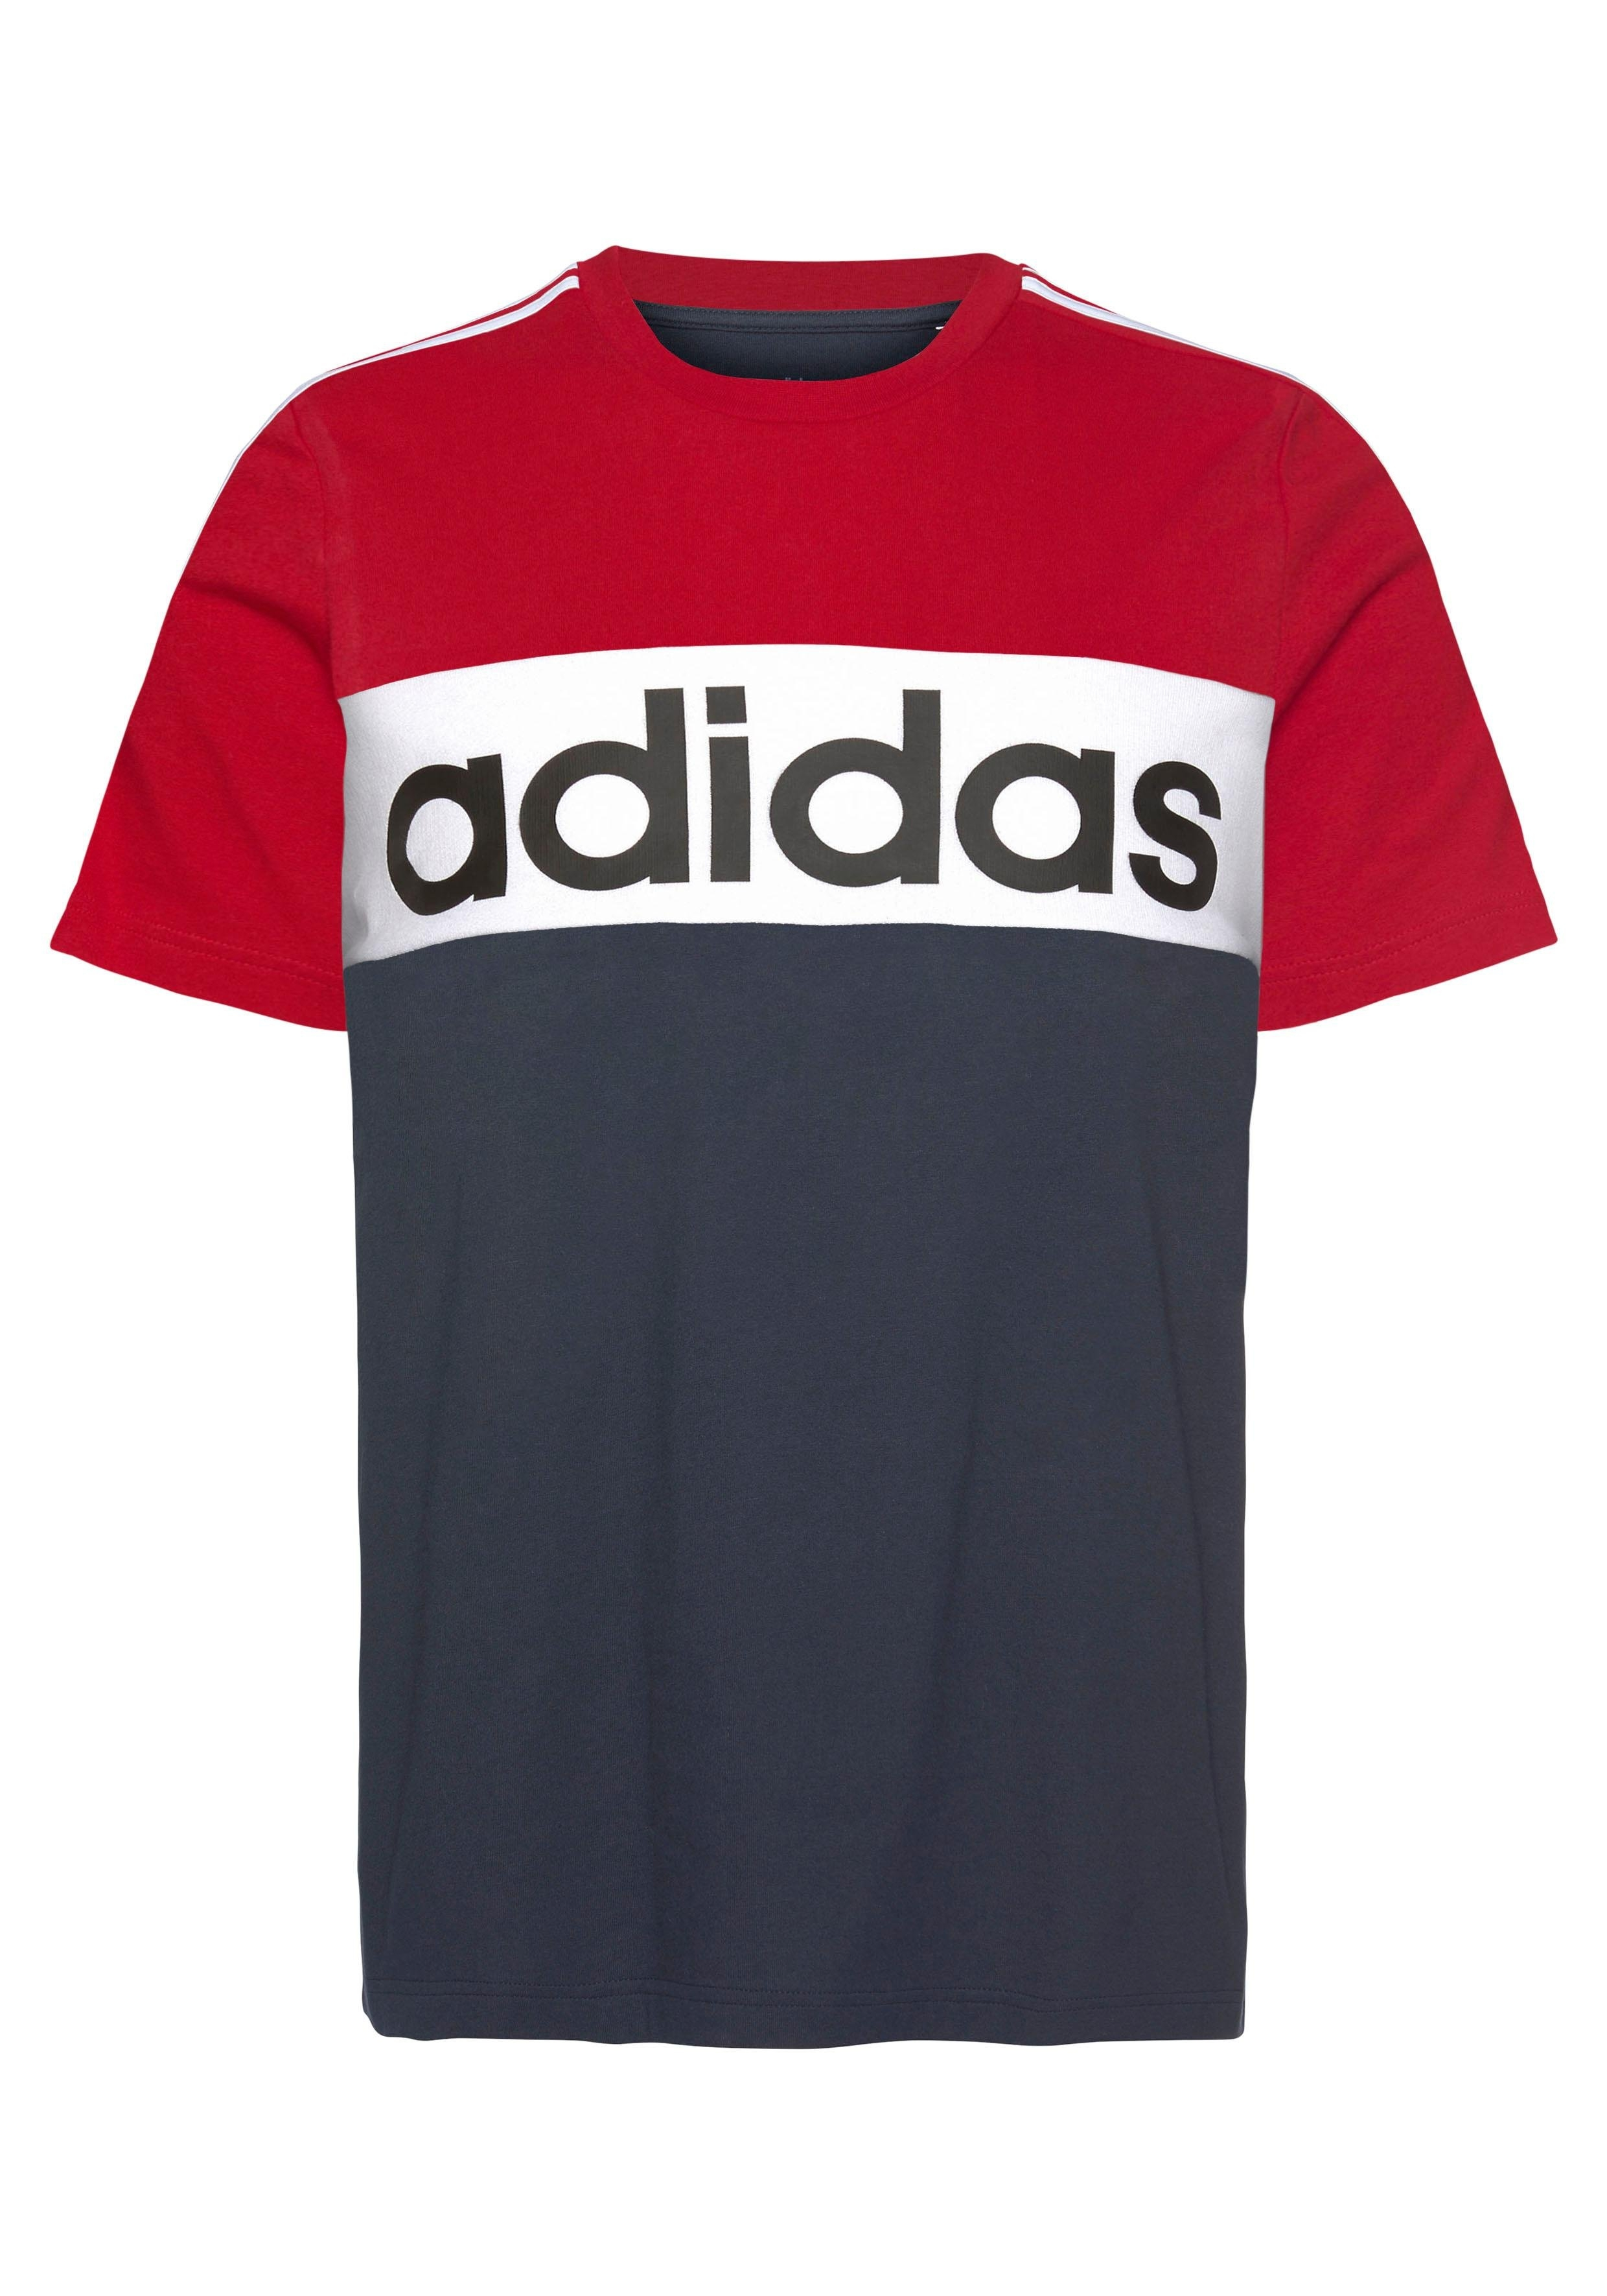 adidas Performance T-shirt »YOUTH BOY ESSENTIAL TEE« veilig op otto.nl kopen